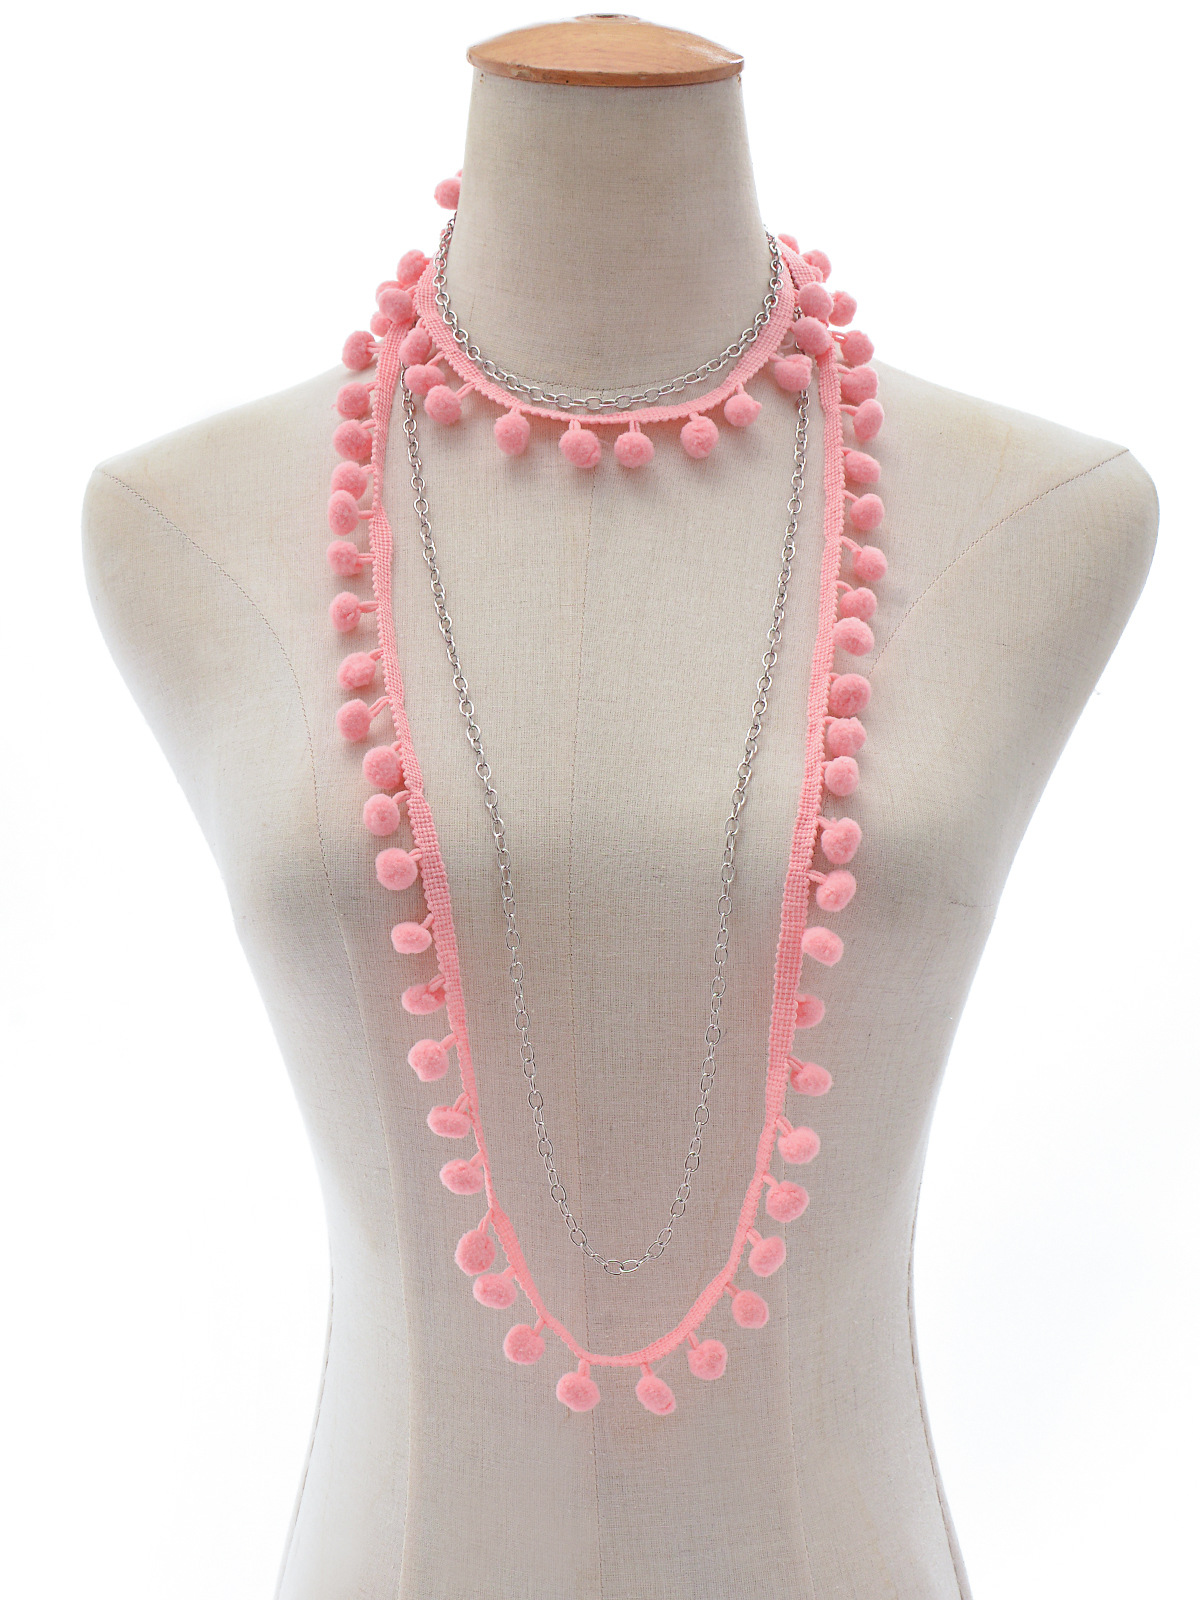 Occident and the United States alloy plating necklace (C2174 Pink)NHXR1452-C2174 Pink